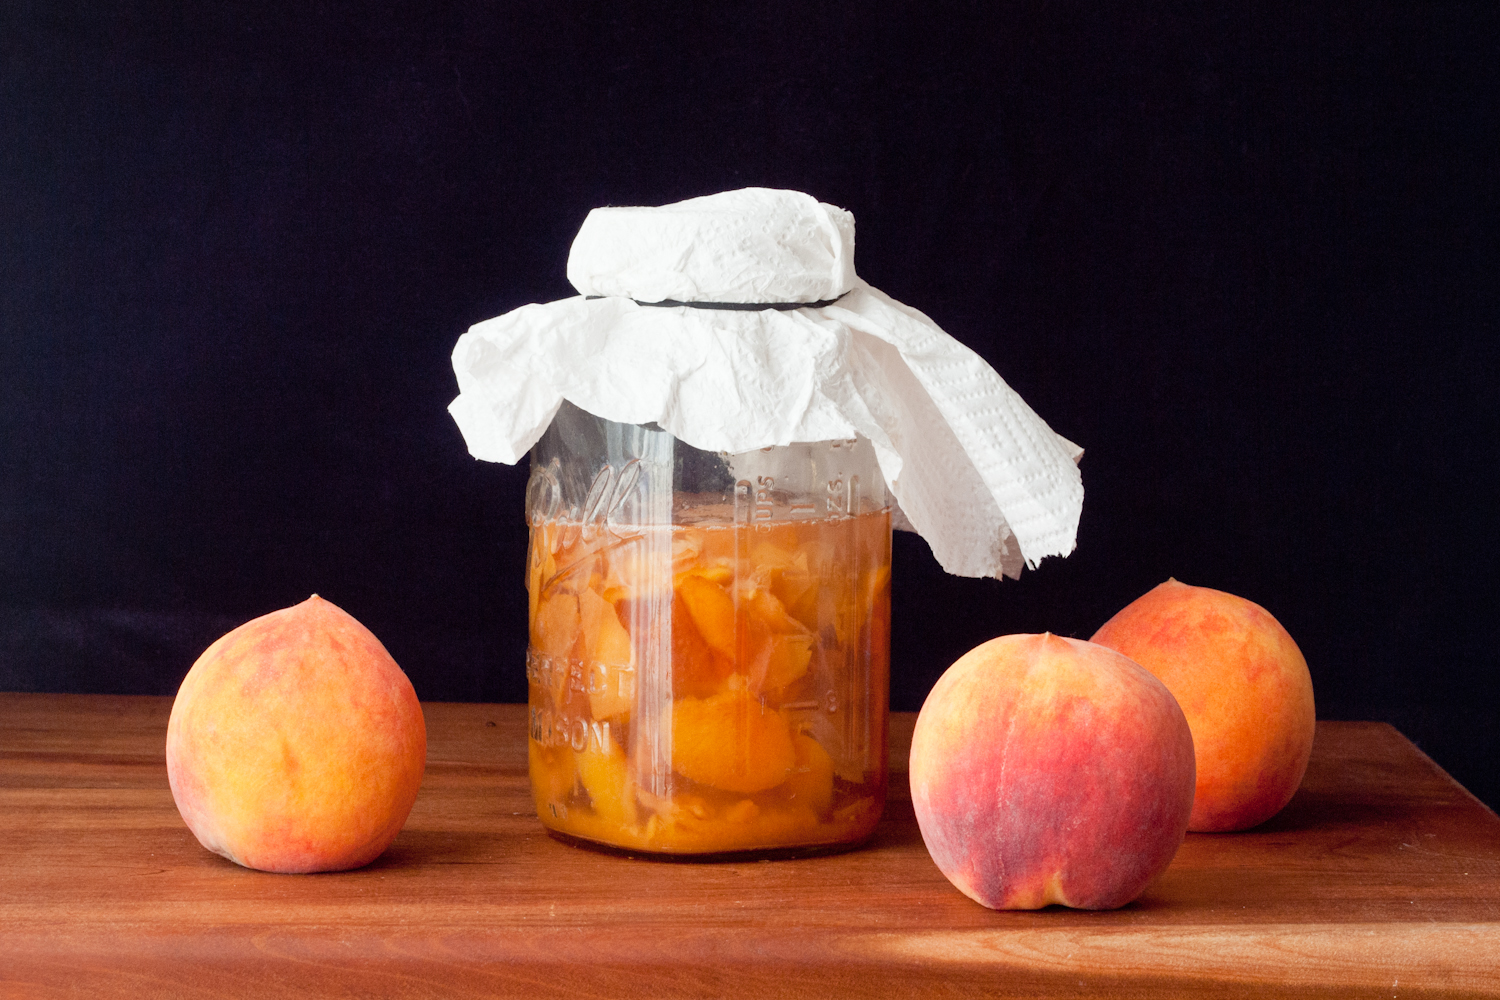 Homemade peach vinegar made from peach skins, photo by Susan Lutz 2015.